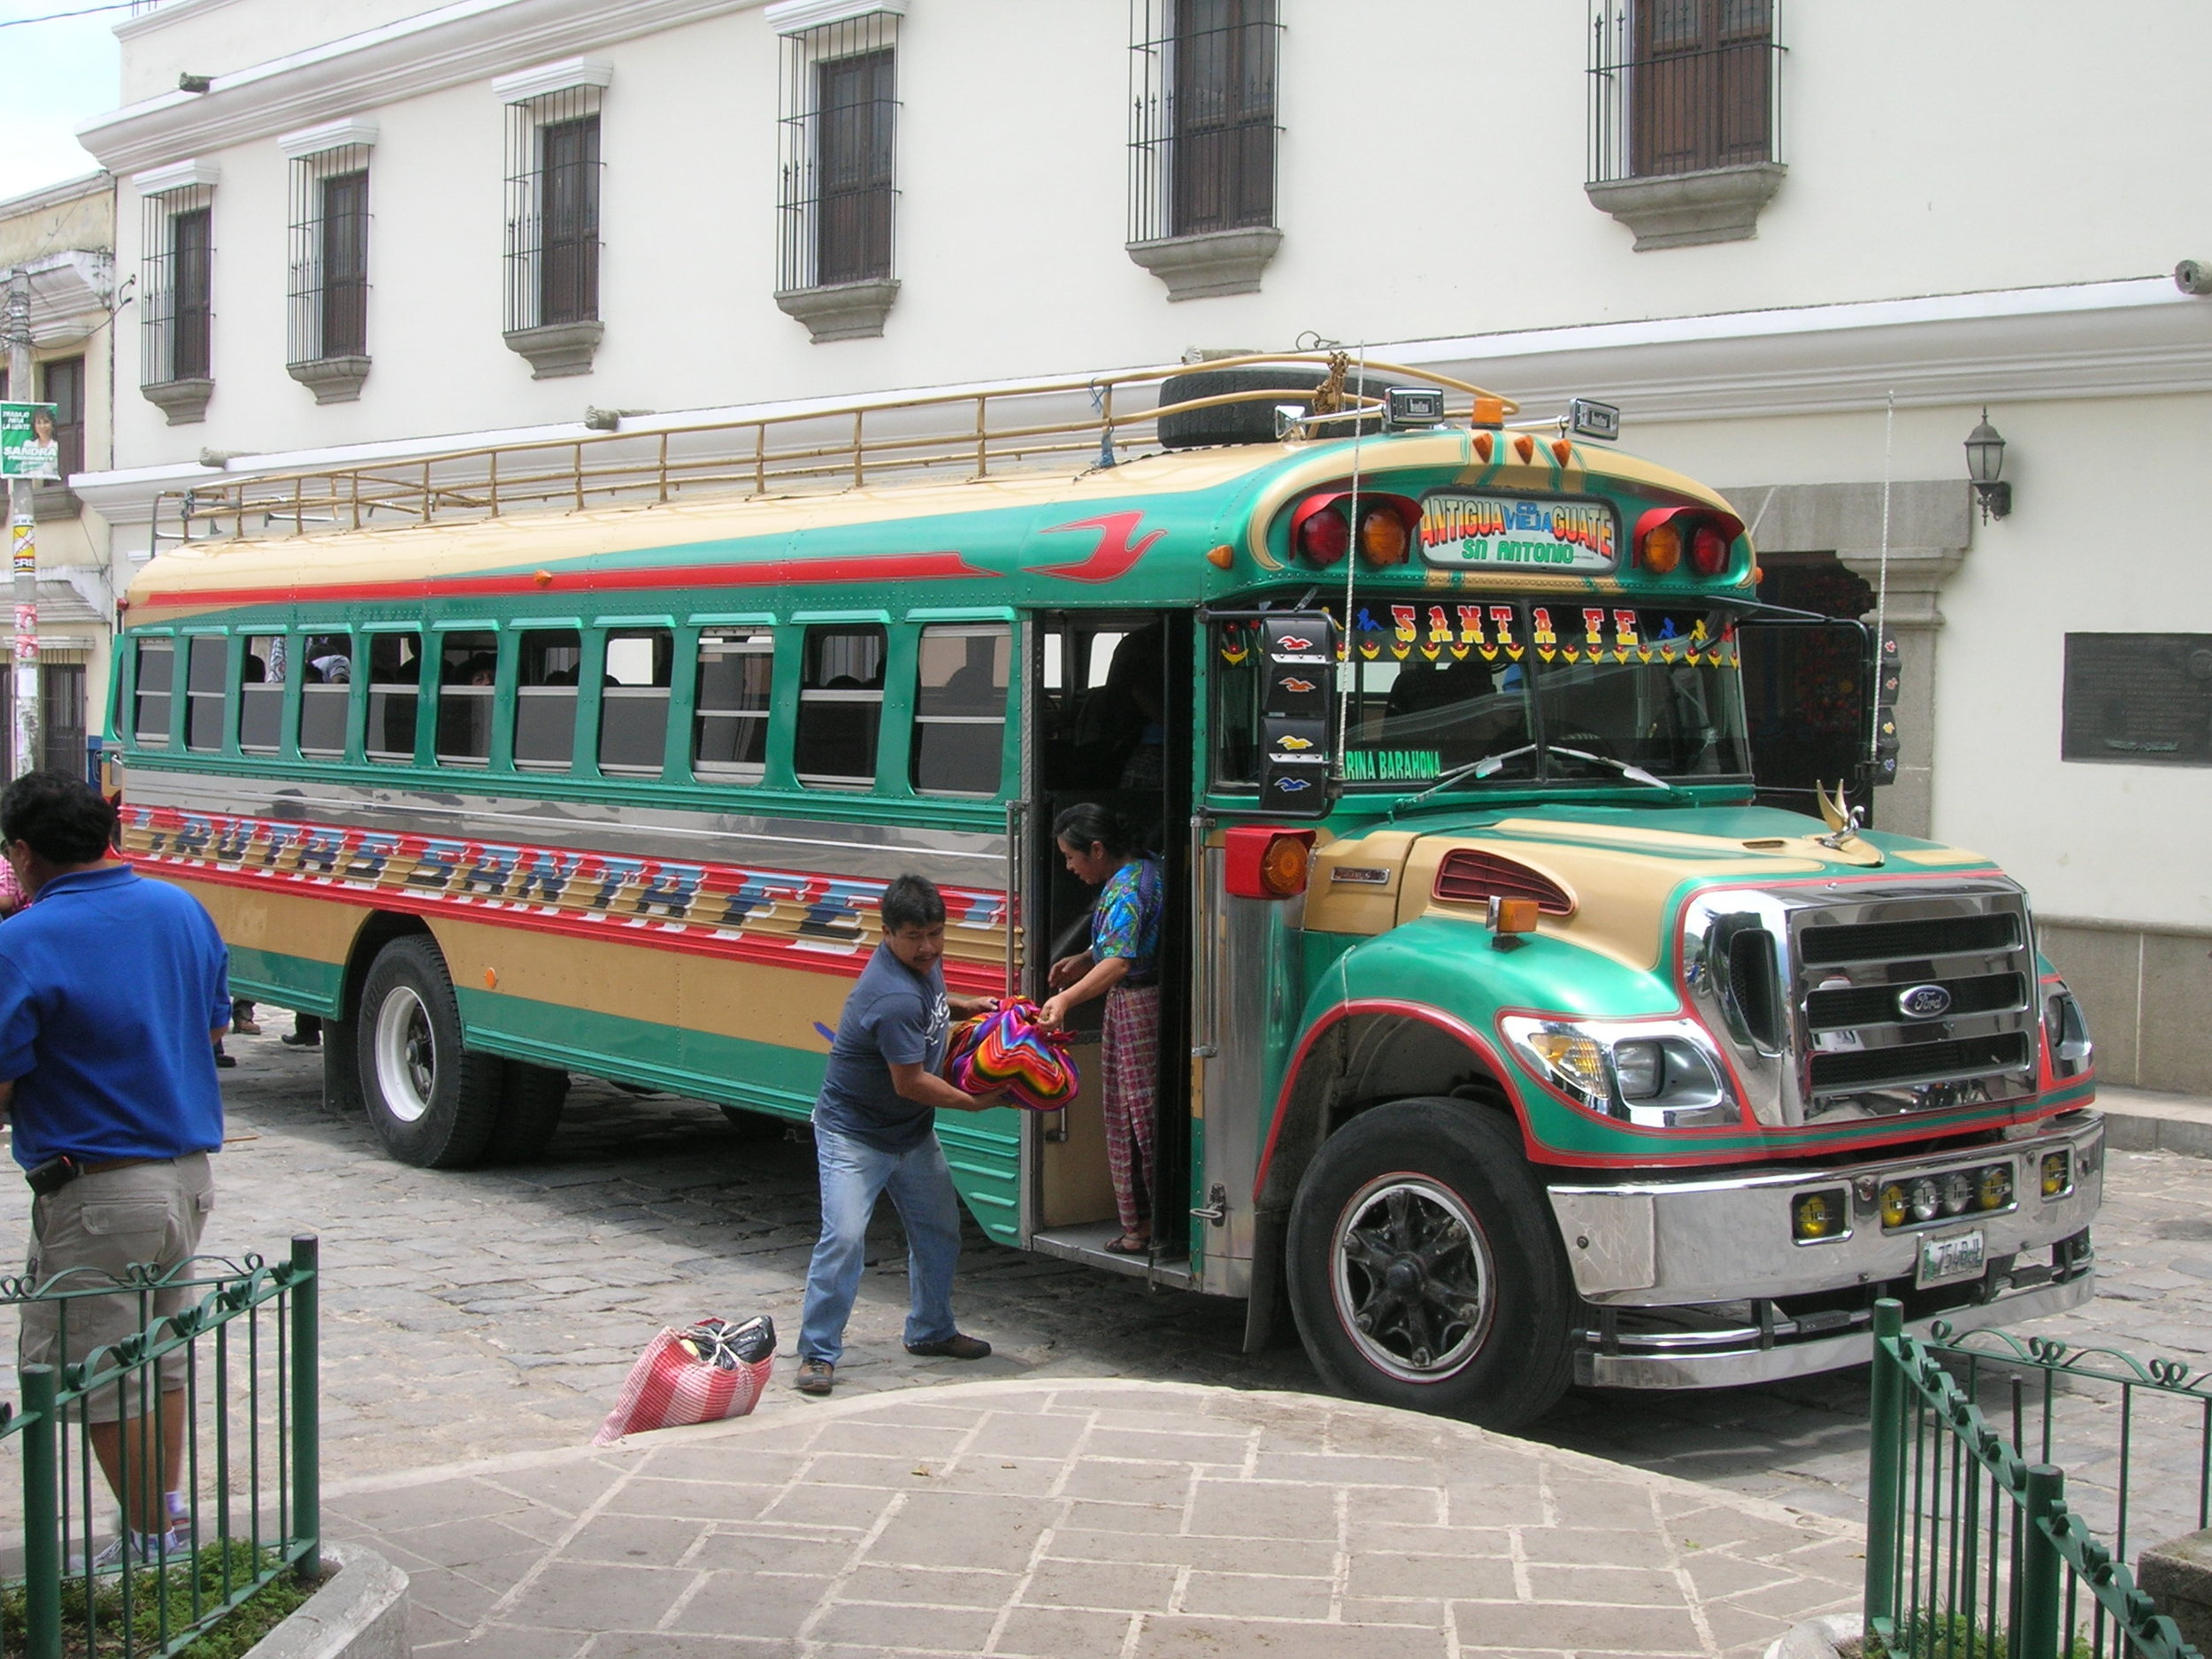 Vibrantly painted school bus are everywhere in Guatemala. They are the primary mode of transportation for goods and people between towns and cities.